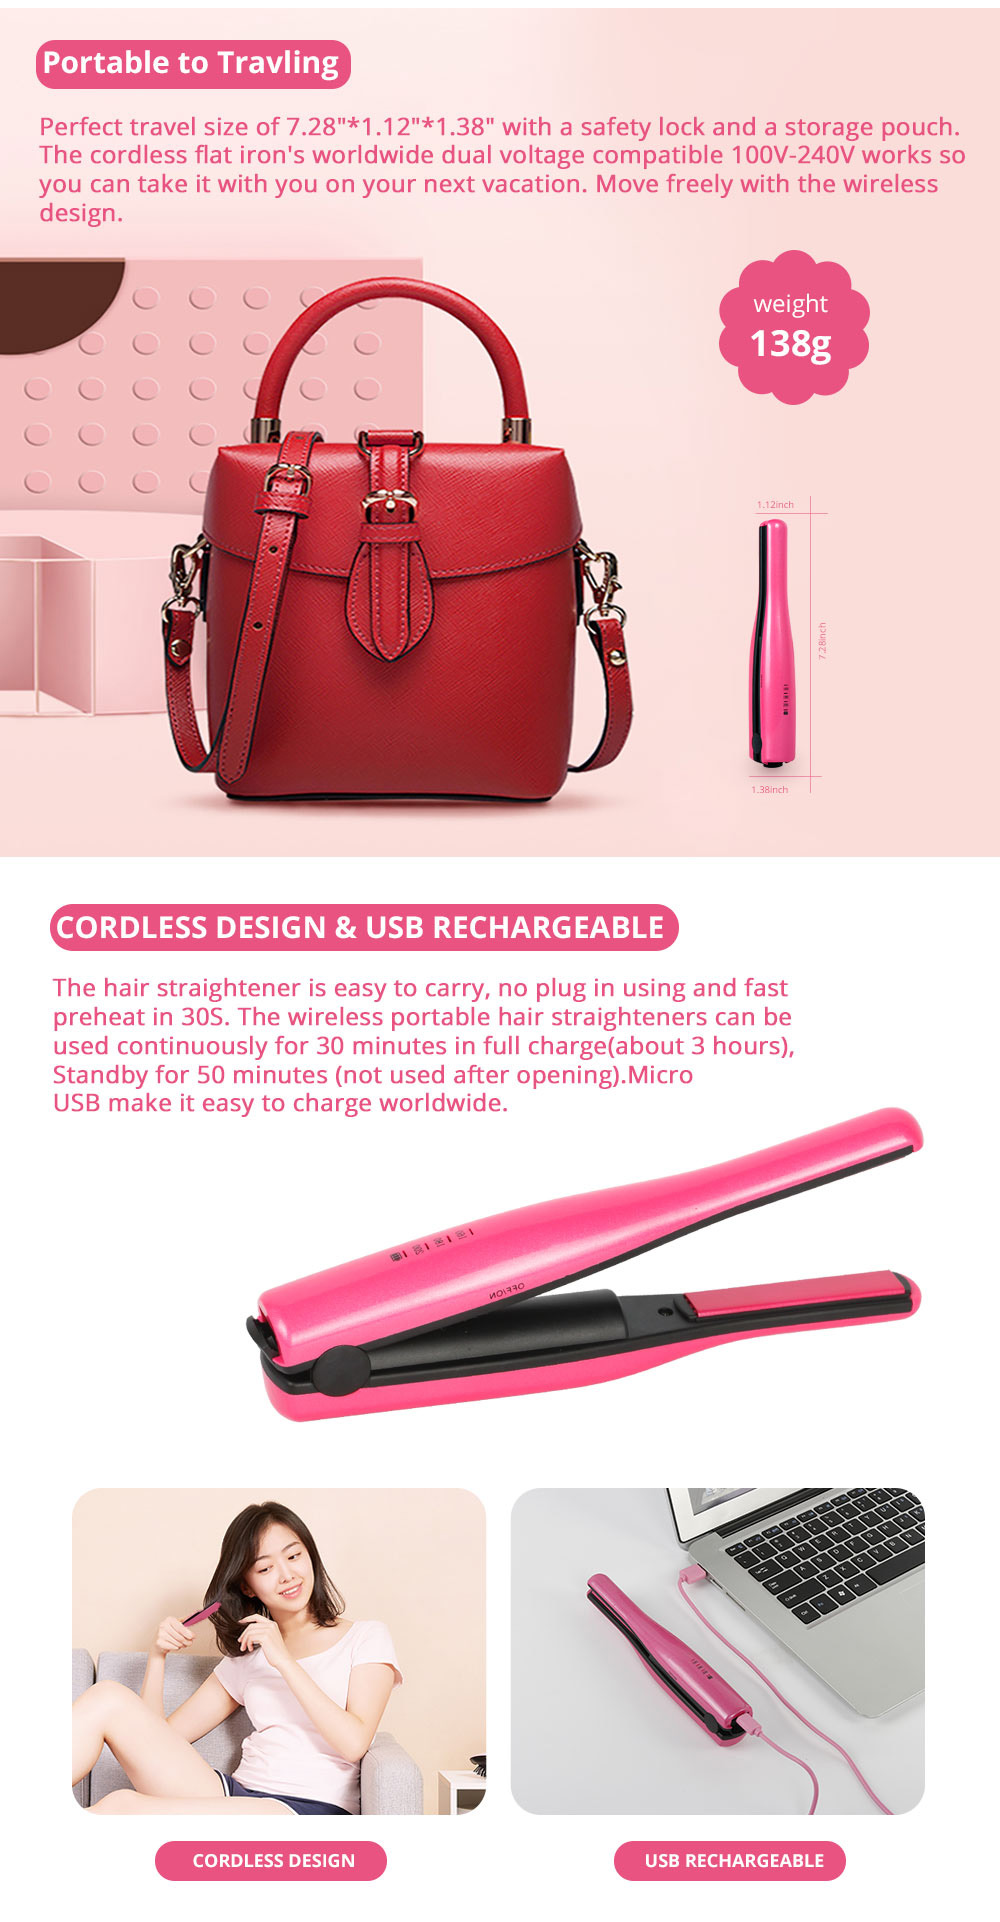 Mini Travel Portable Hair Straightener Curling Iron Cordless USB Charger for Beginner Christmas Gift BLACK FRIDAY SALE 1